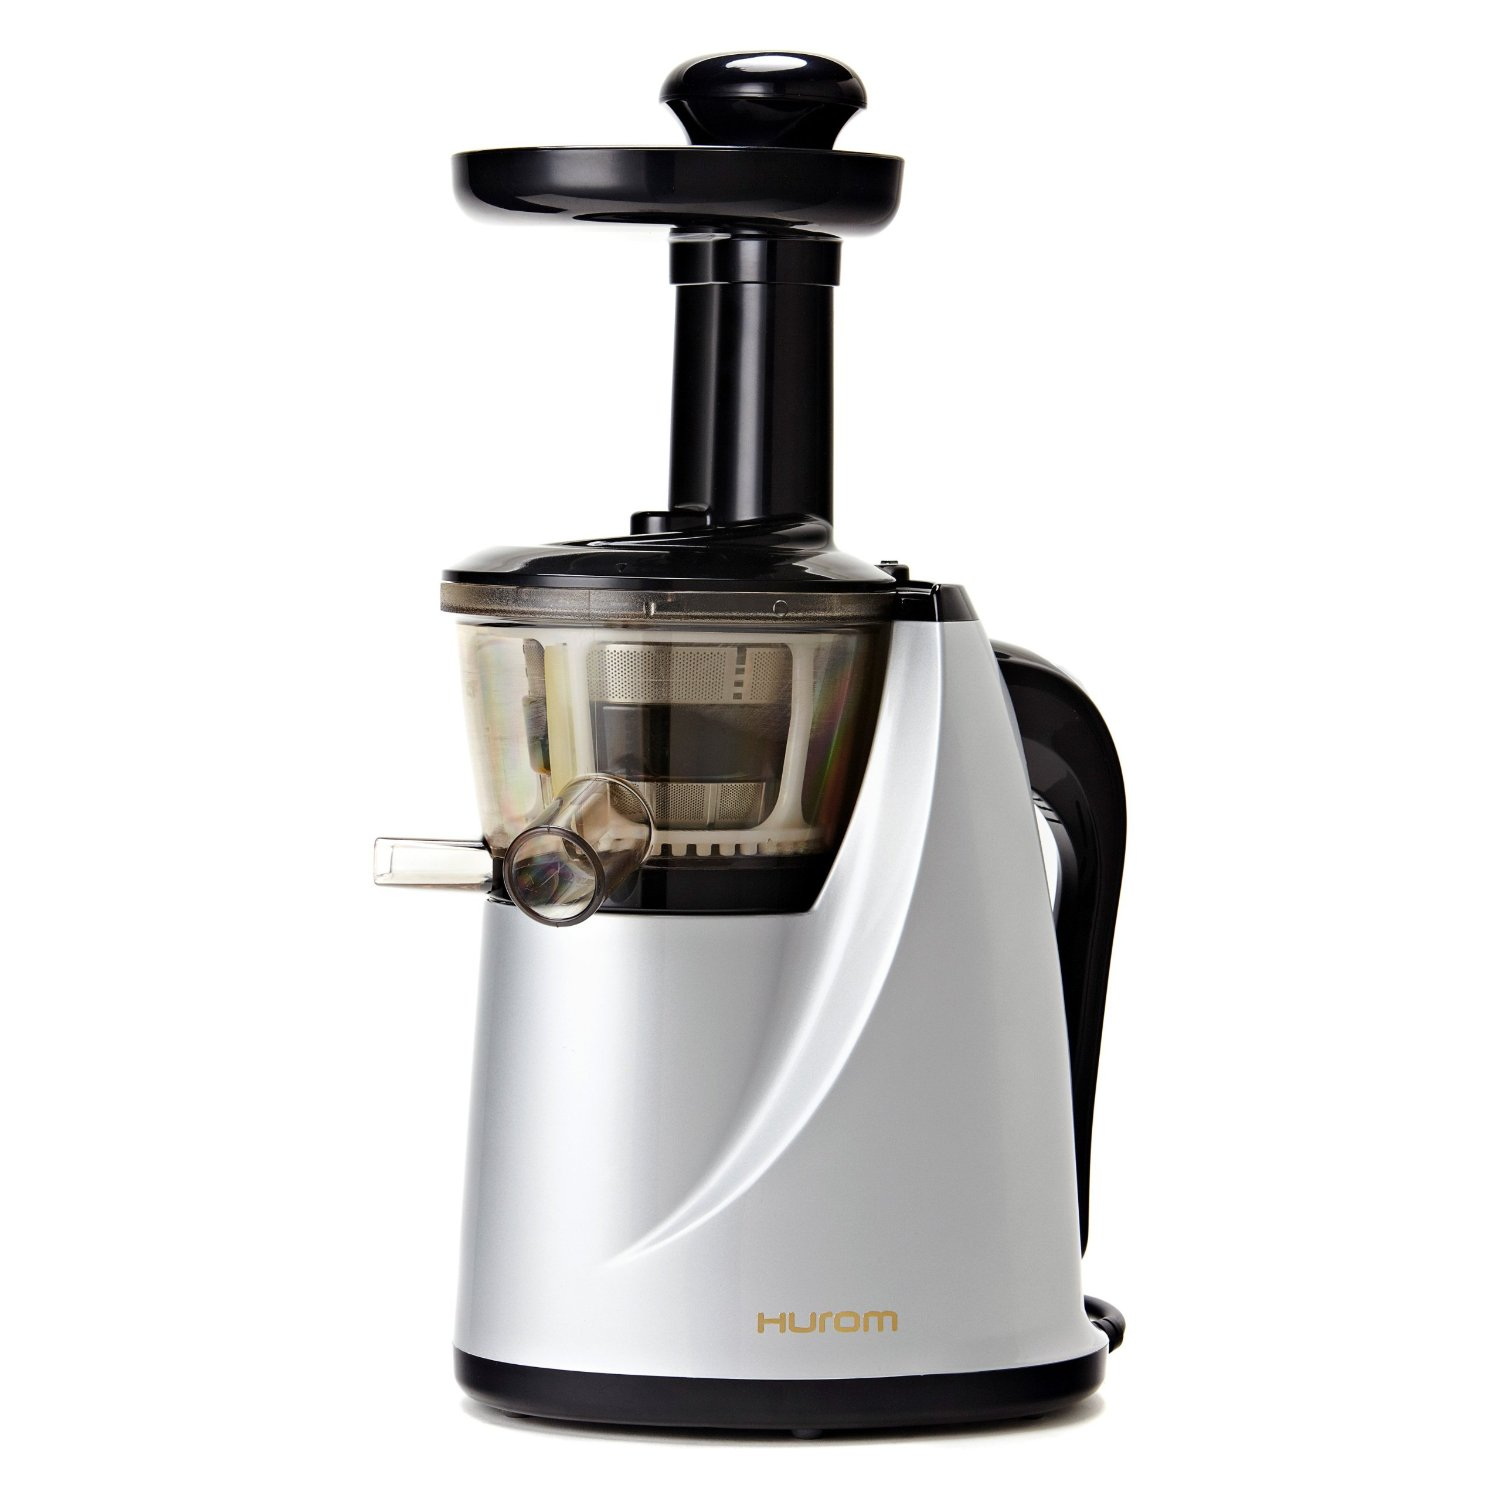 Best Cold Press Slow Juicer : Hurom HU-100 Masticating Slow Juicer Review - Best Cold Press Juicers